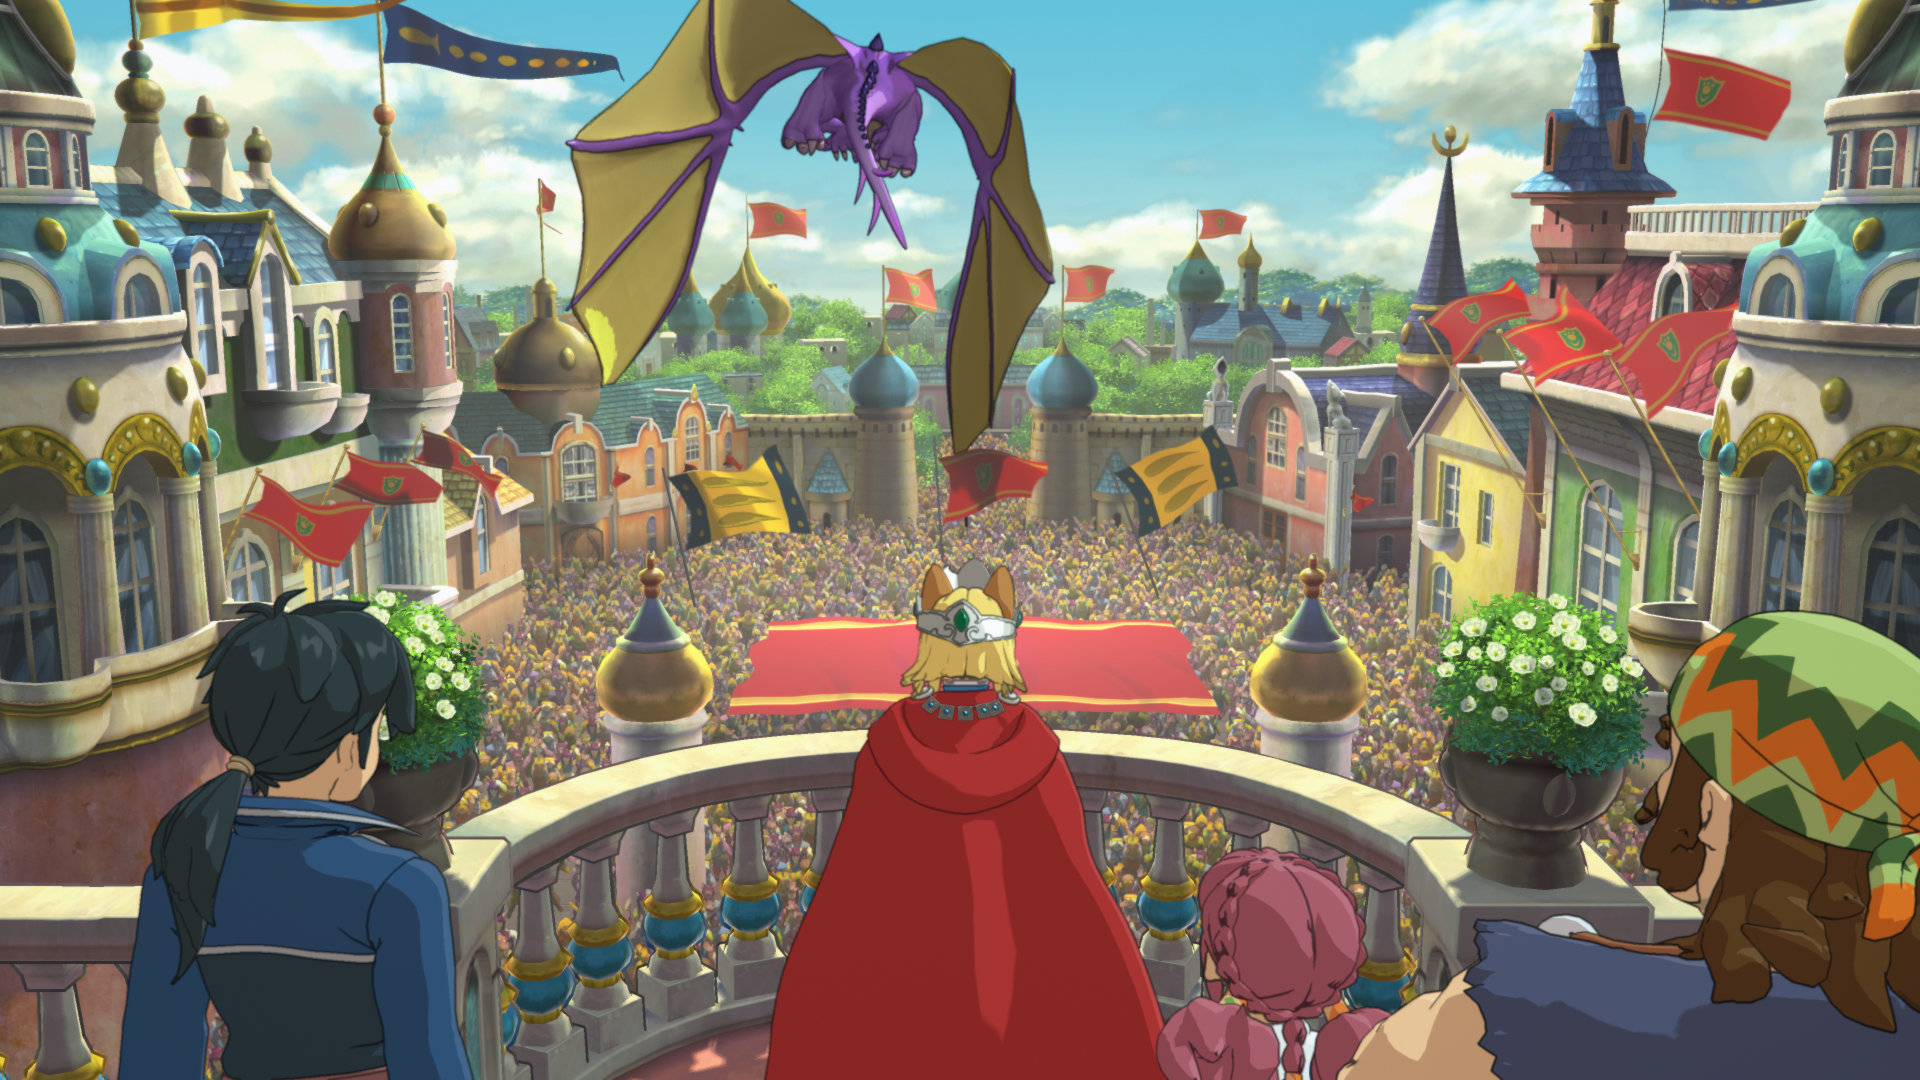 ni-no-kuni-ii-ps4-screen06-us-05dec15?$M